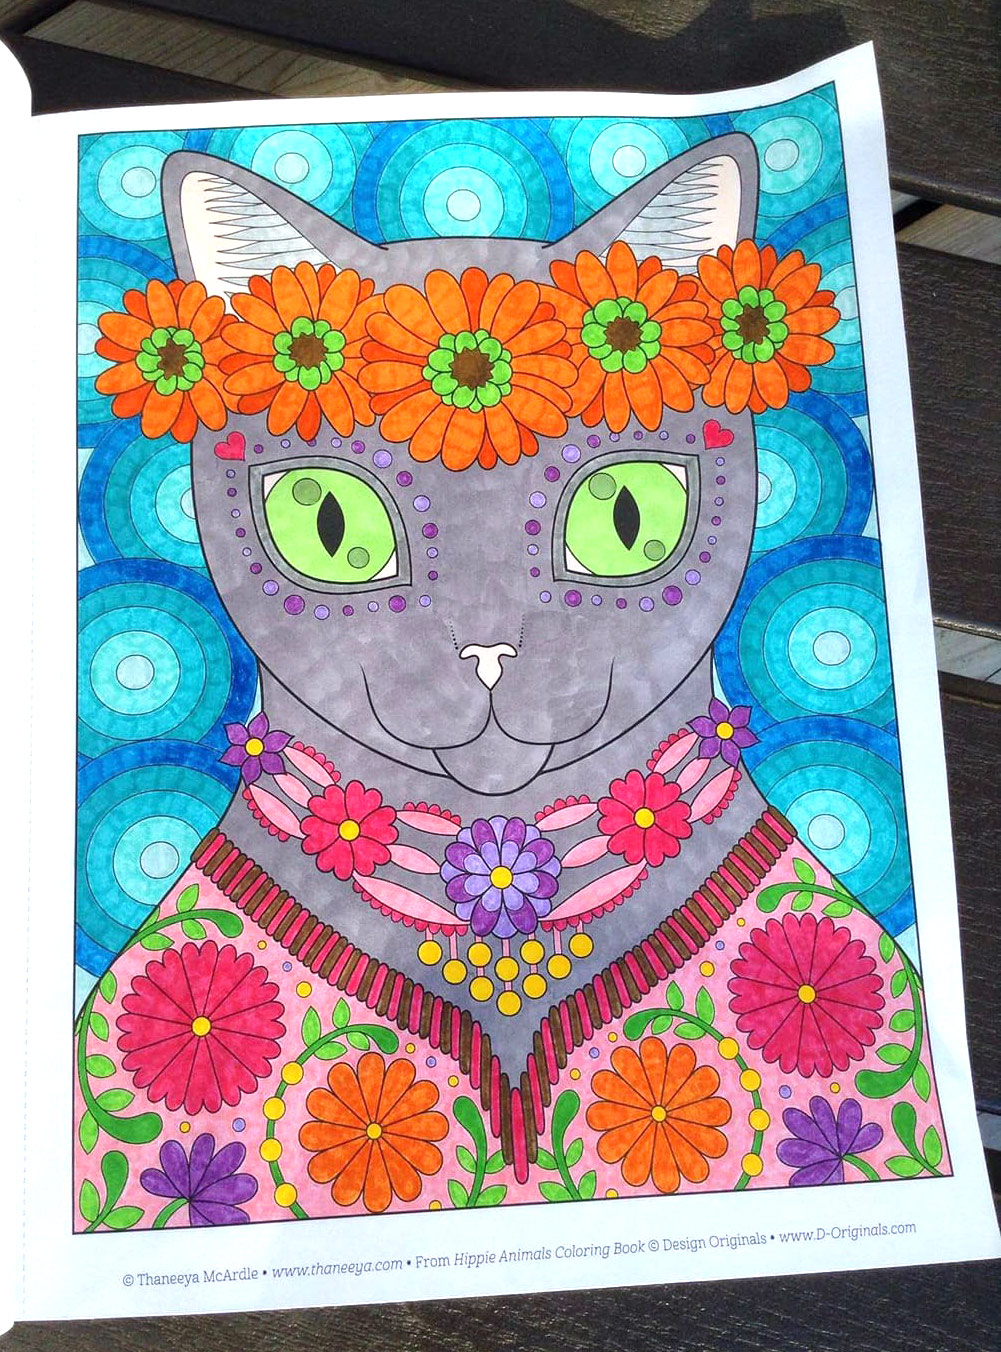 Cat coloring page from Thaneeya McArdle's Hippie Animals Coloring Book, colored in by Tammy M